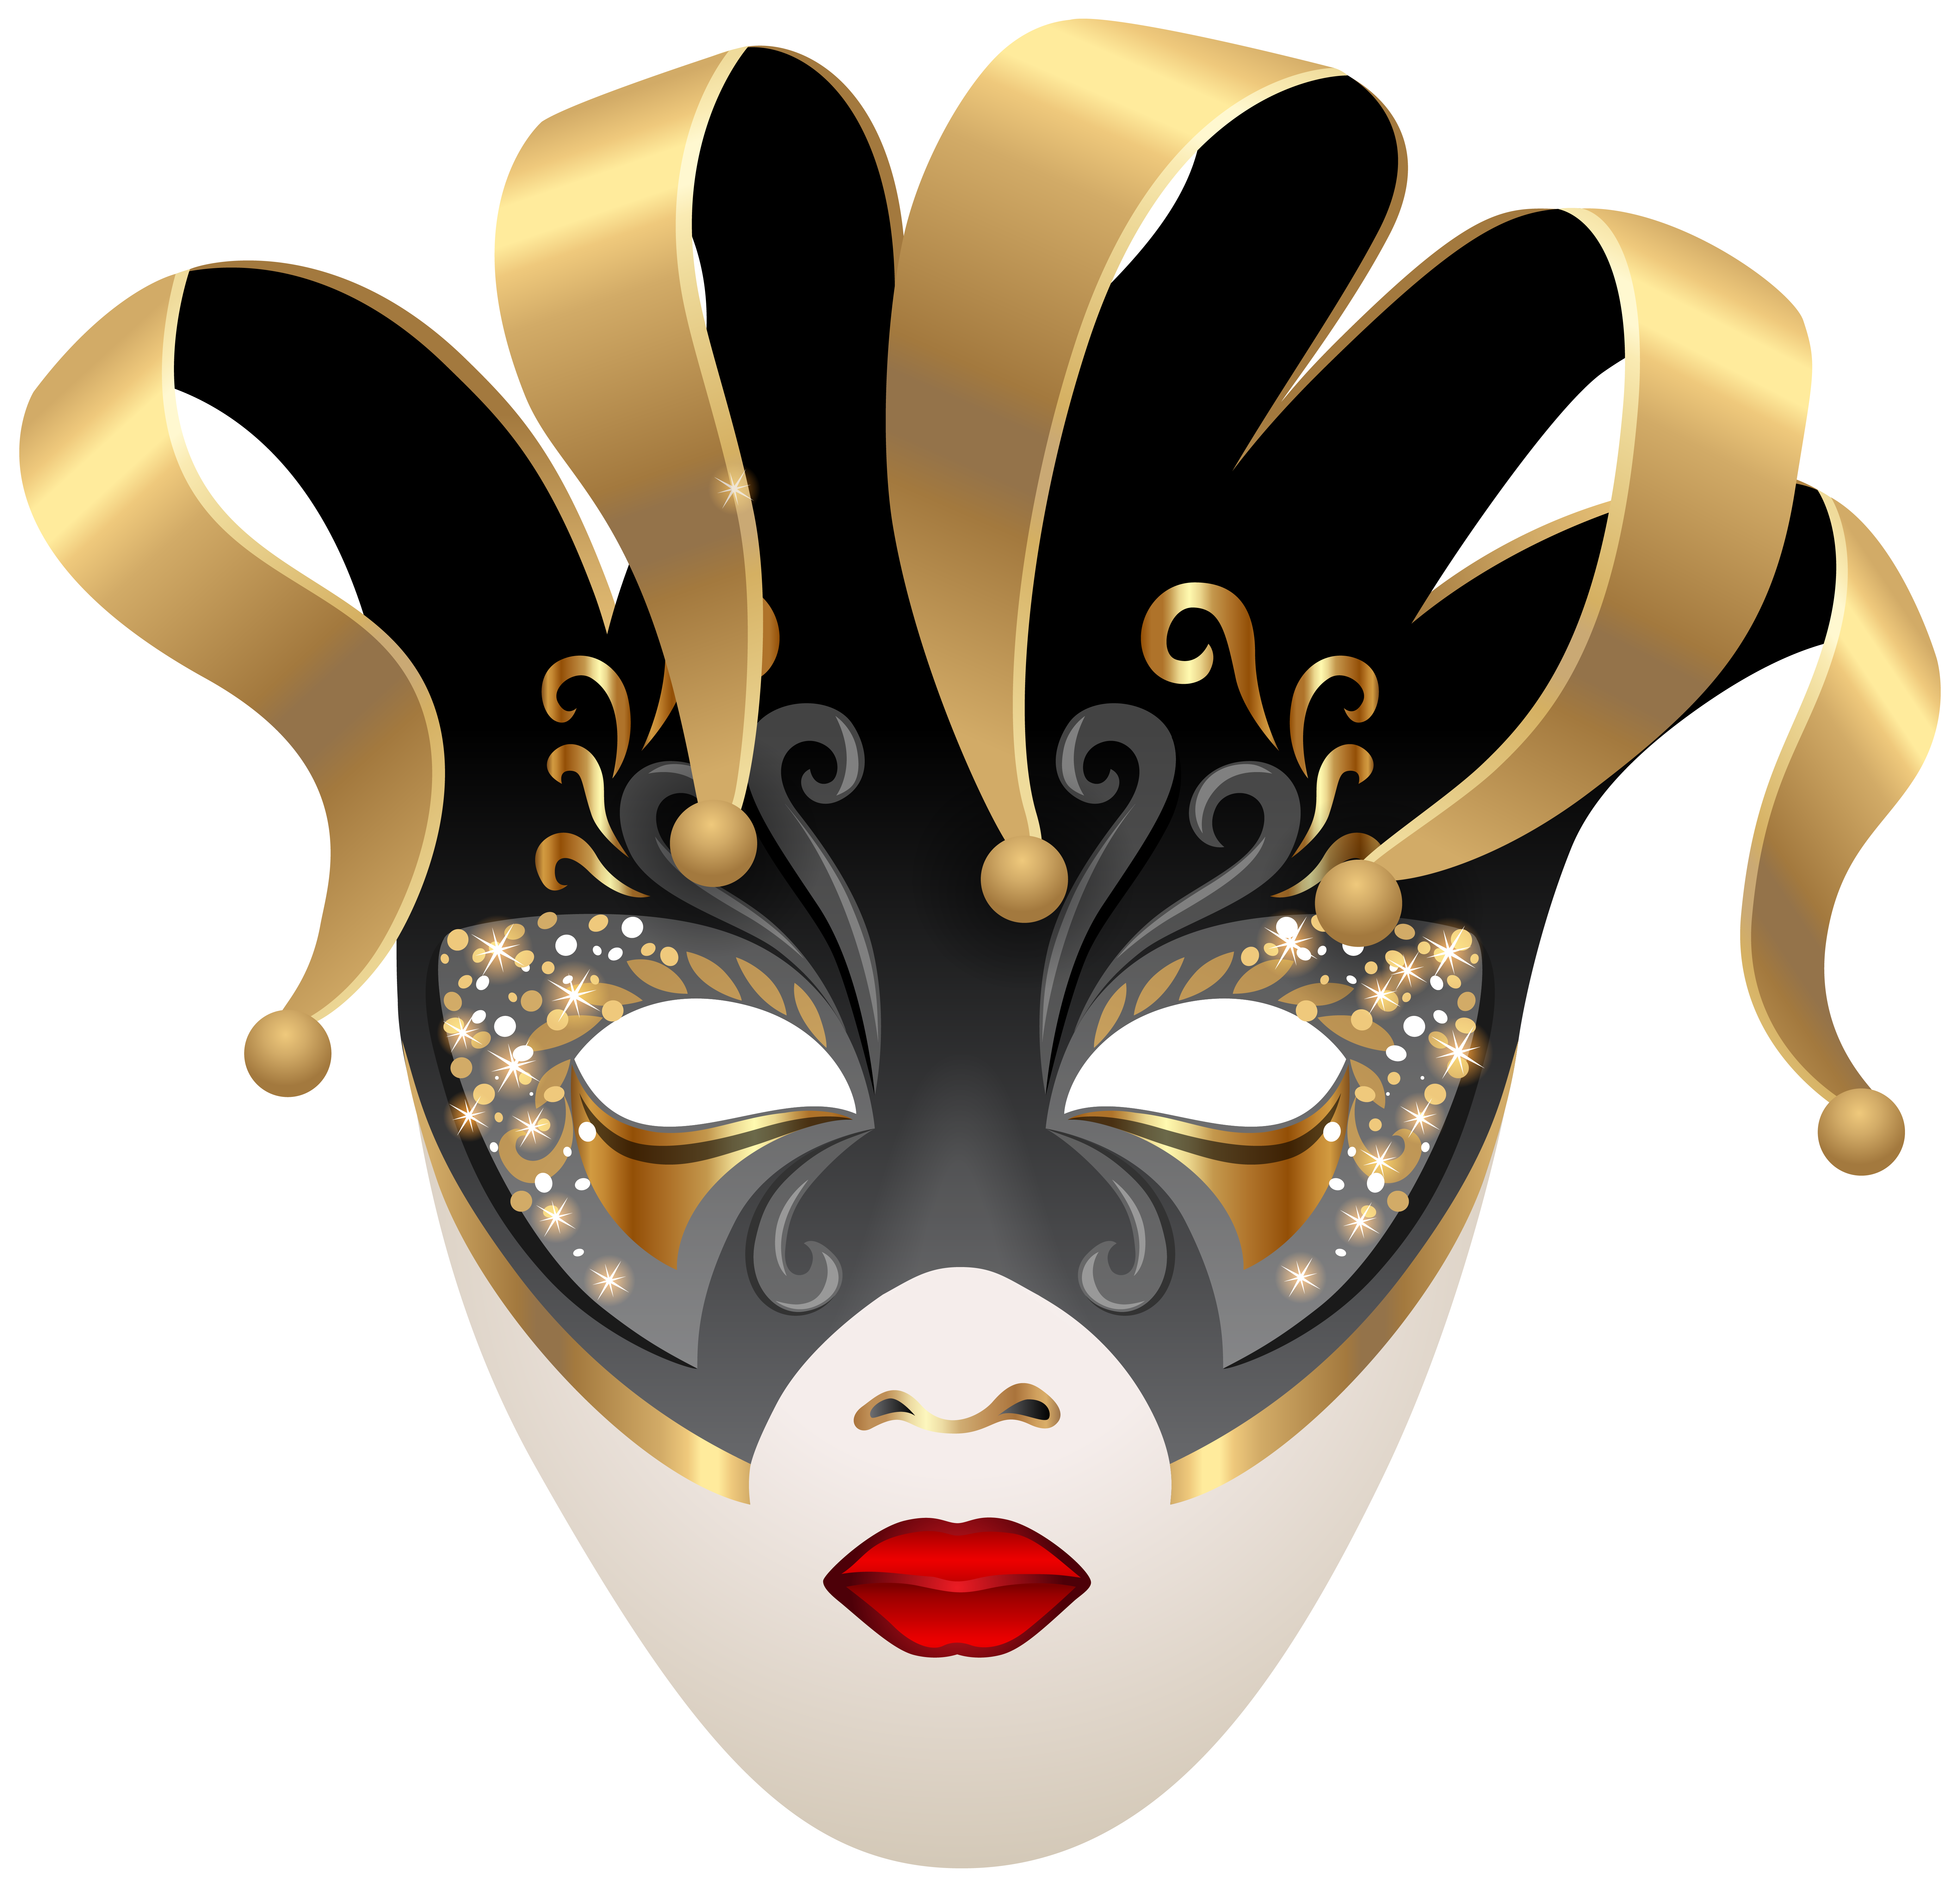 Mask of venice clipart 20 free Cliparts Download images